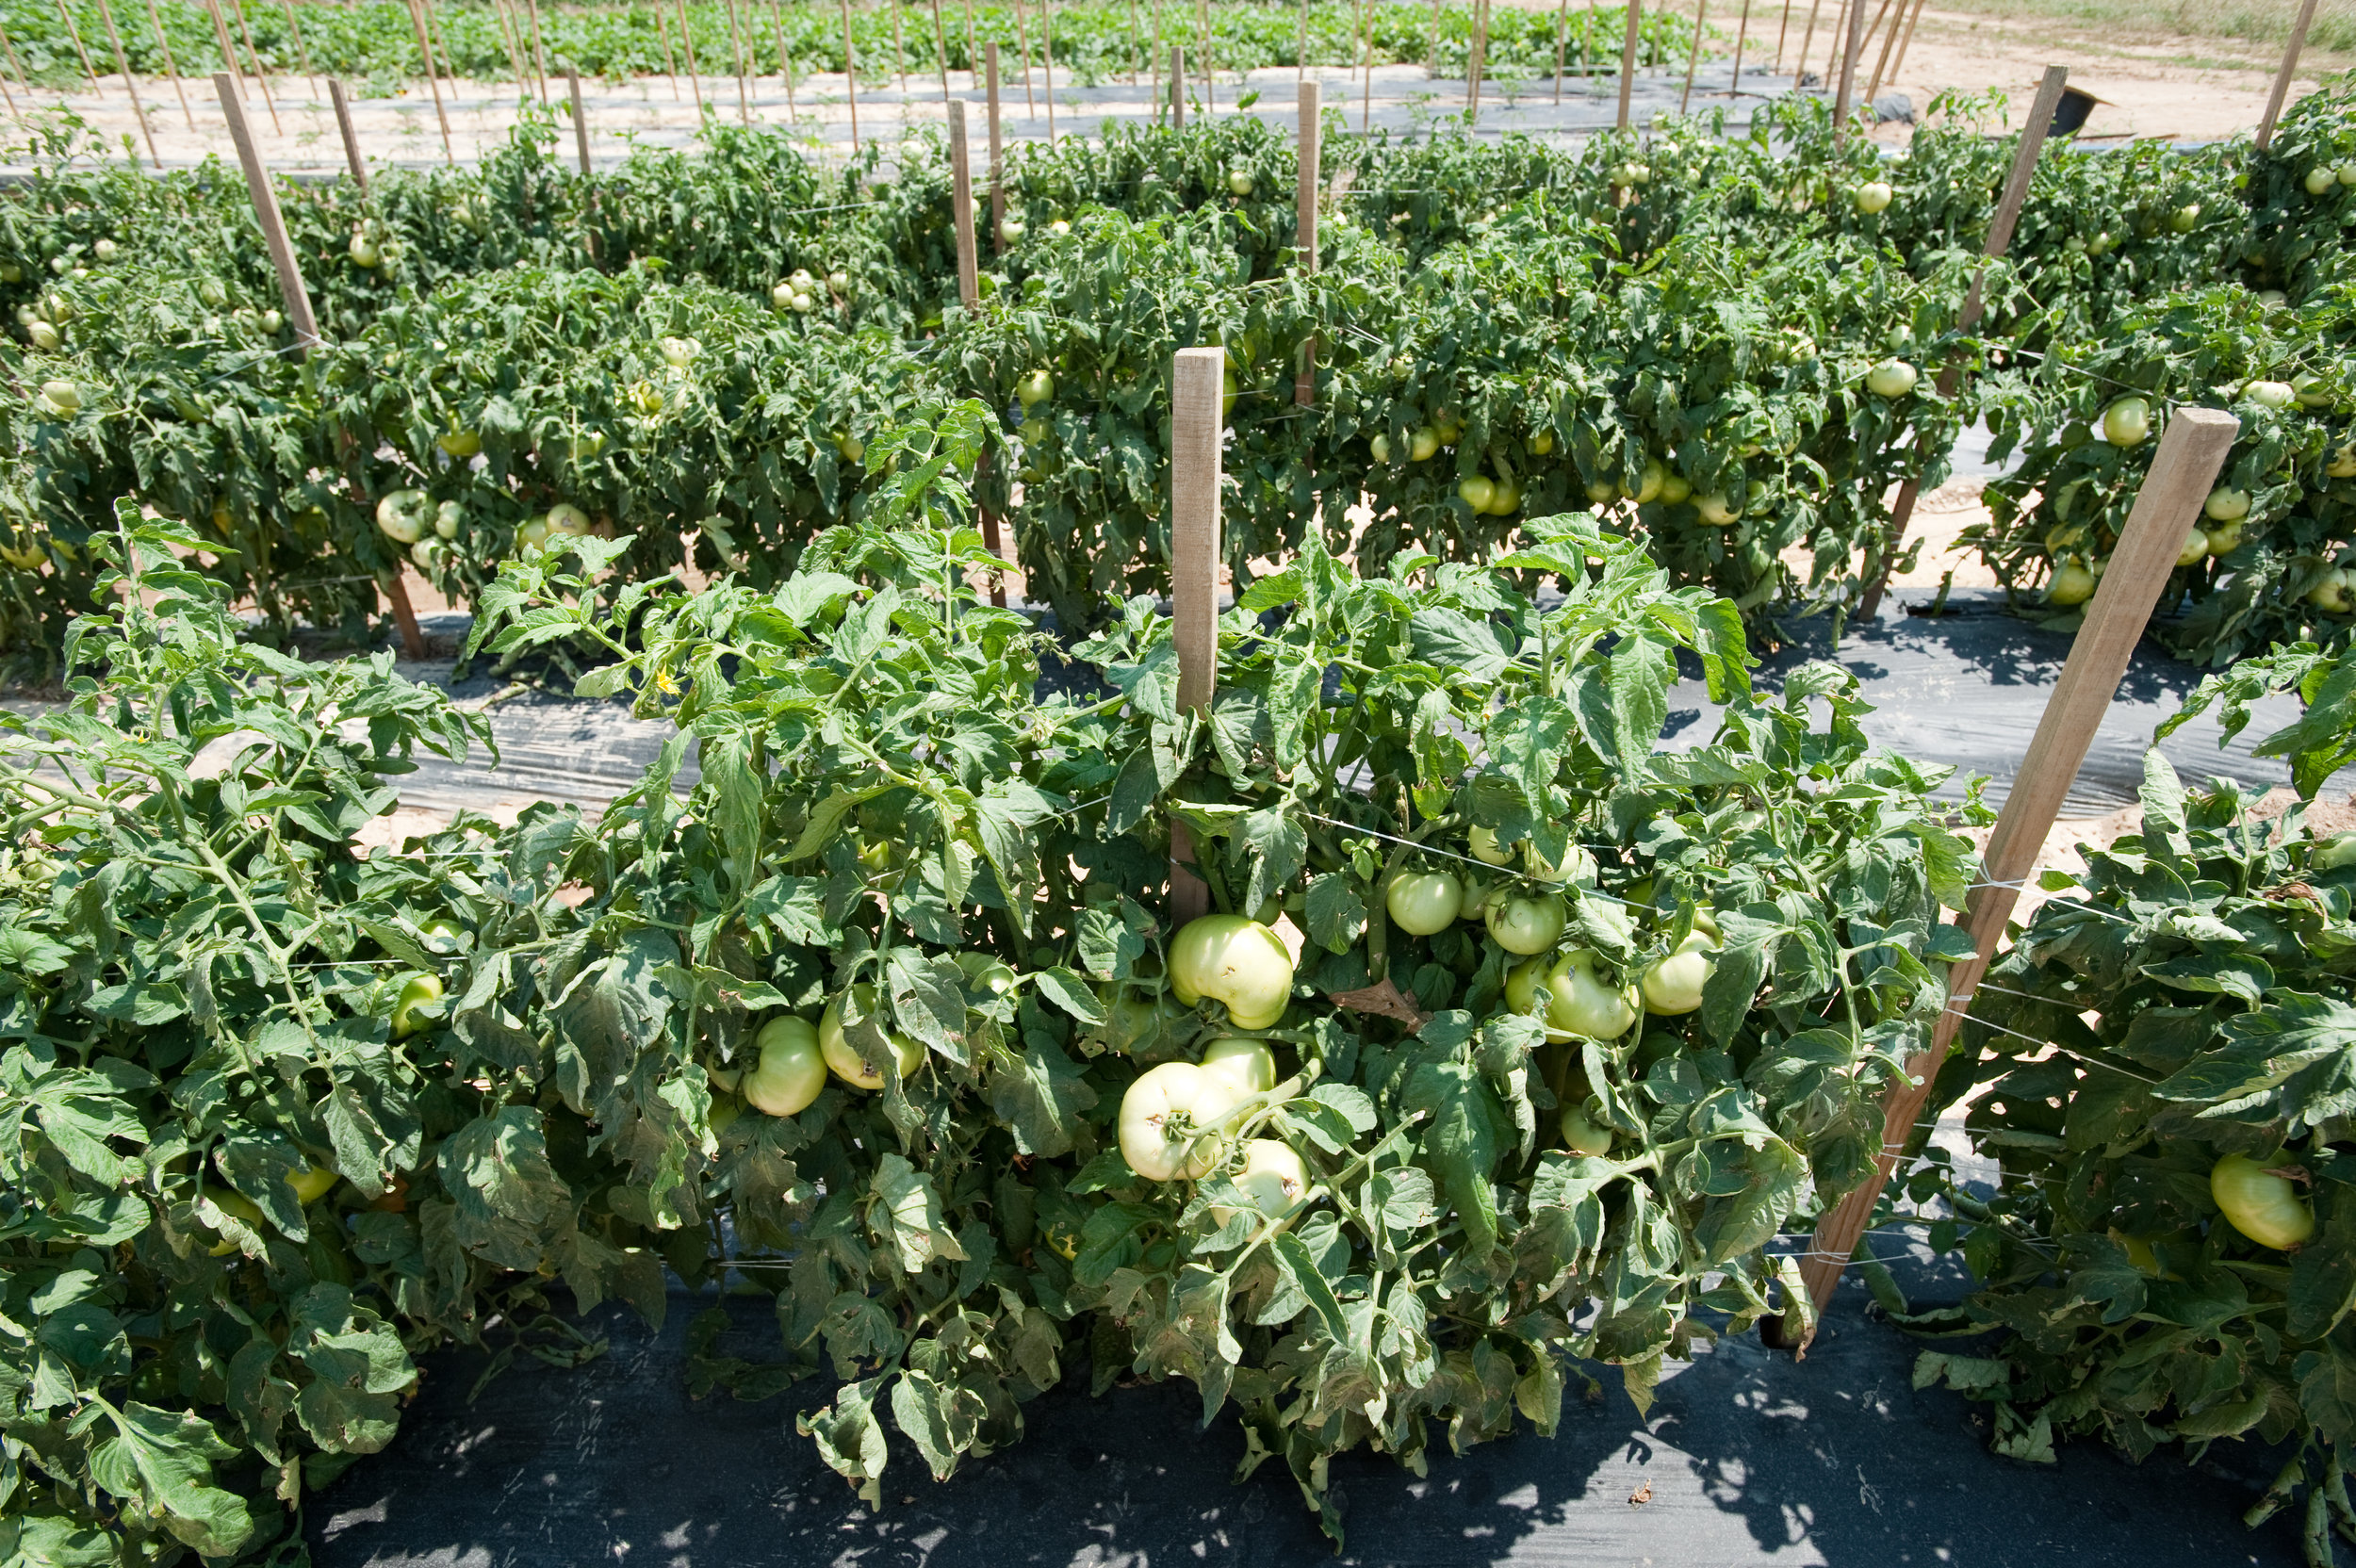 Image by Edwin Remsberg. Image shows green tomatoes growing on the vine.